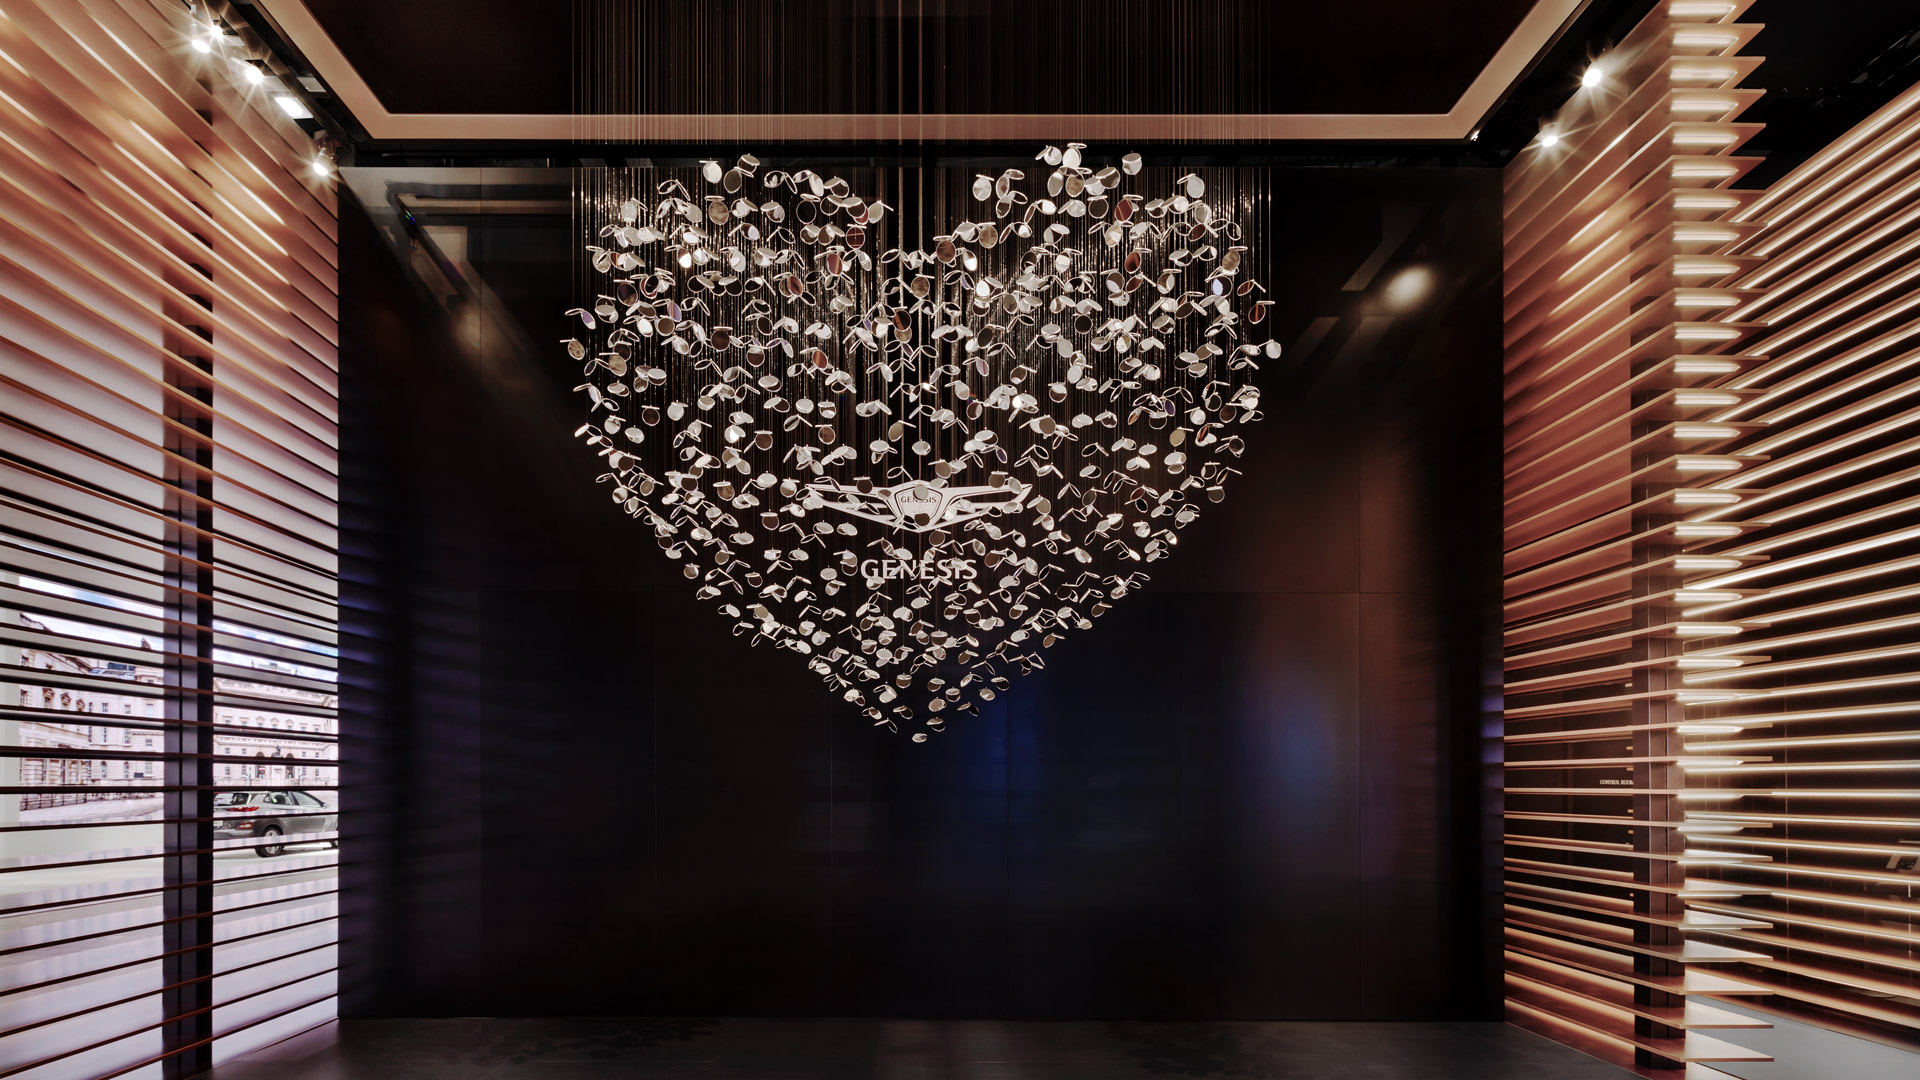 Hundreds of small pocket mirrors hang from the ceiling and form a heart sculpture.